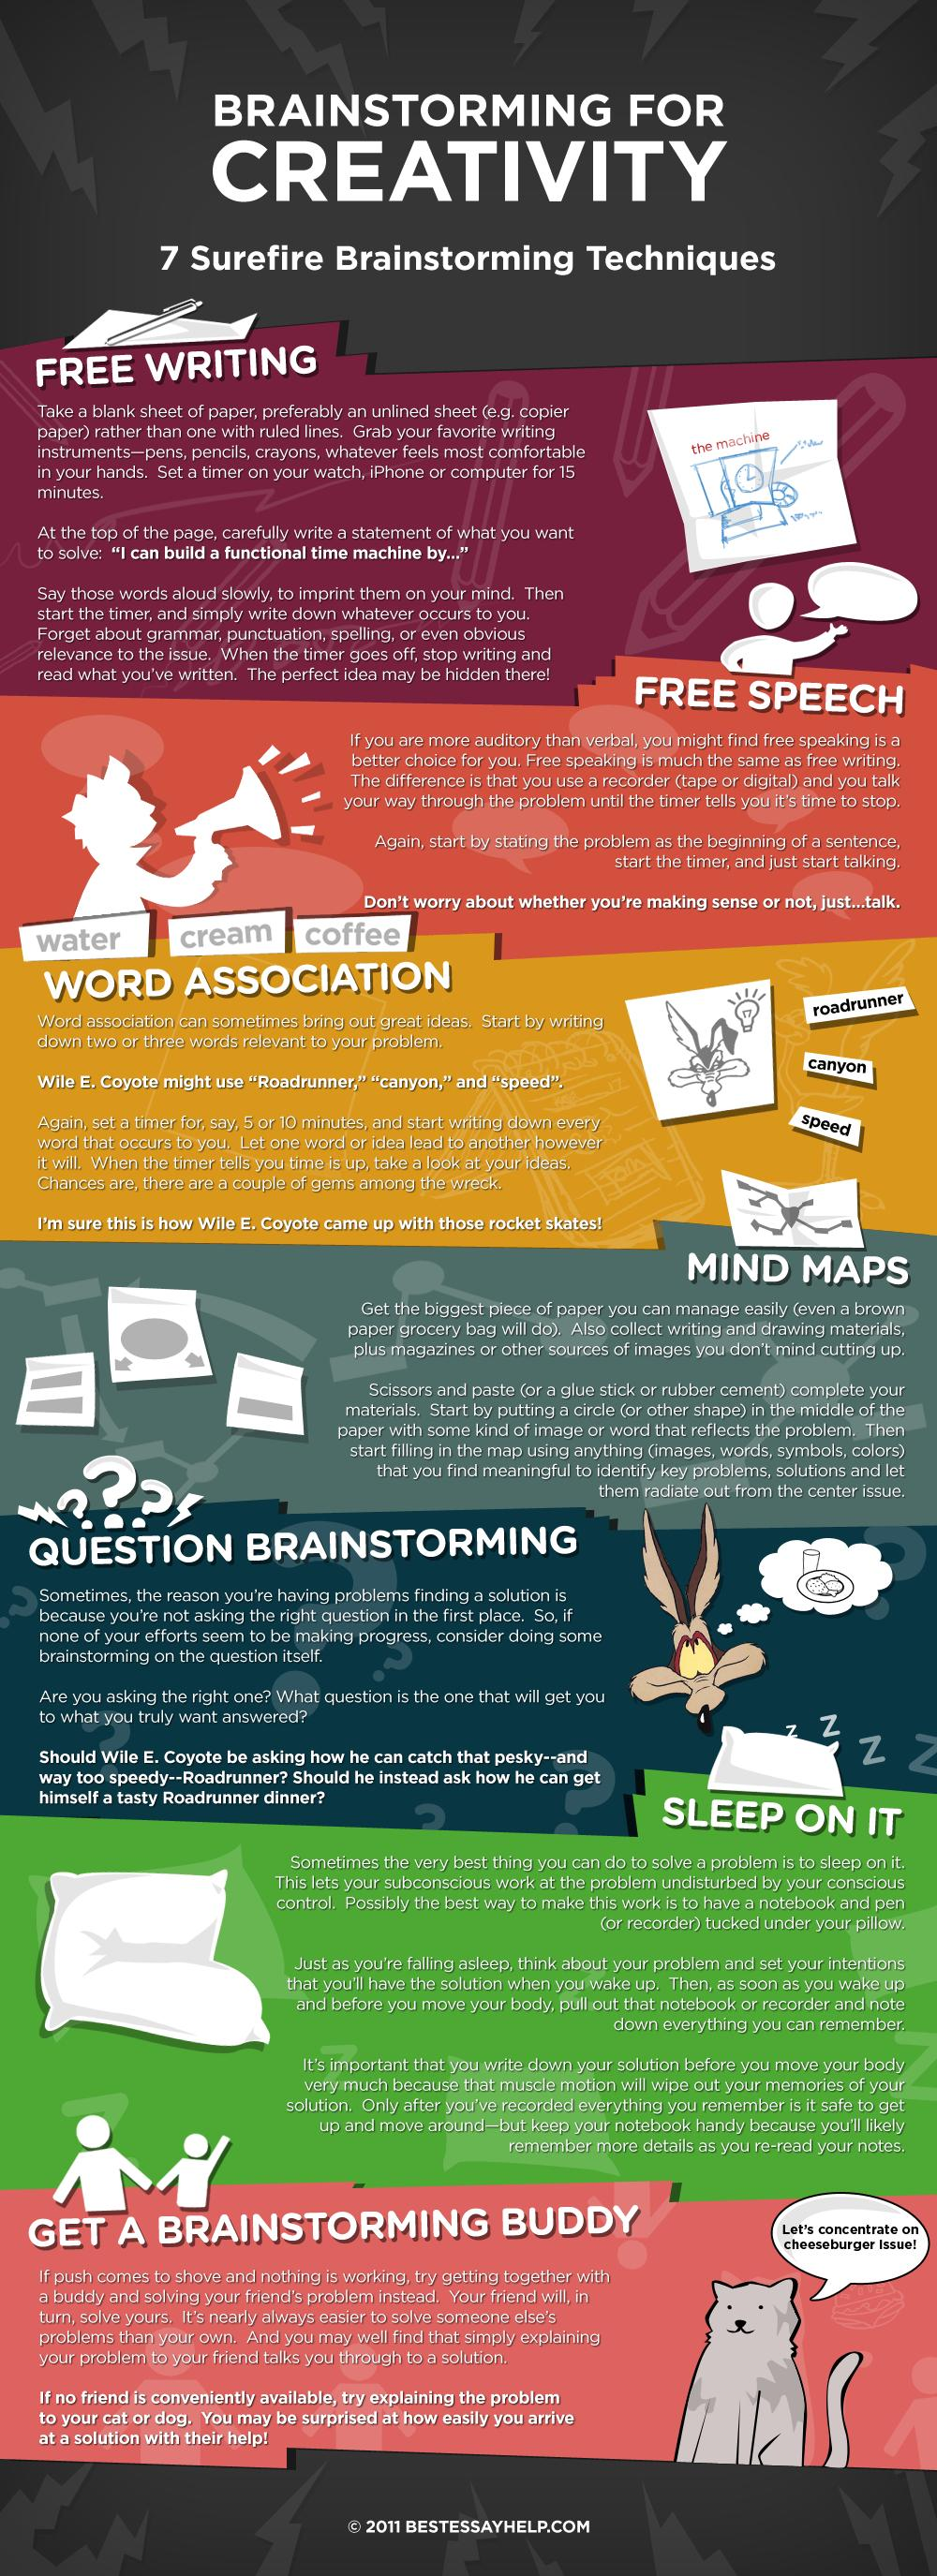 How To Brainstorm For Creativity Infographic